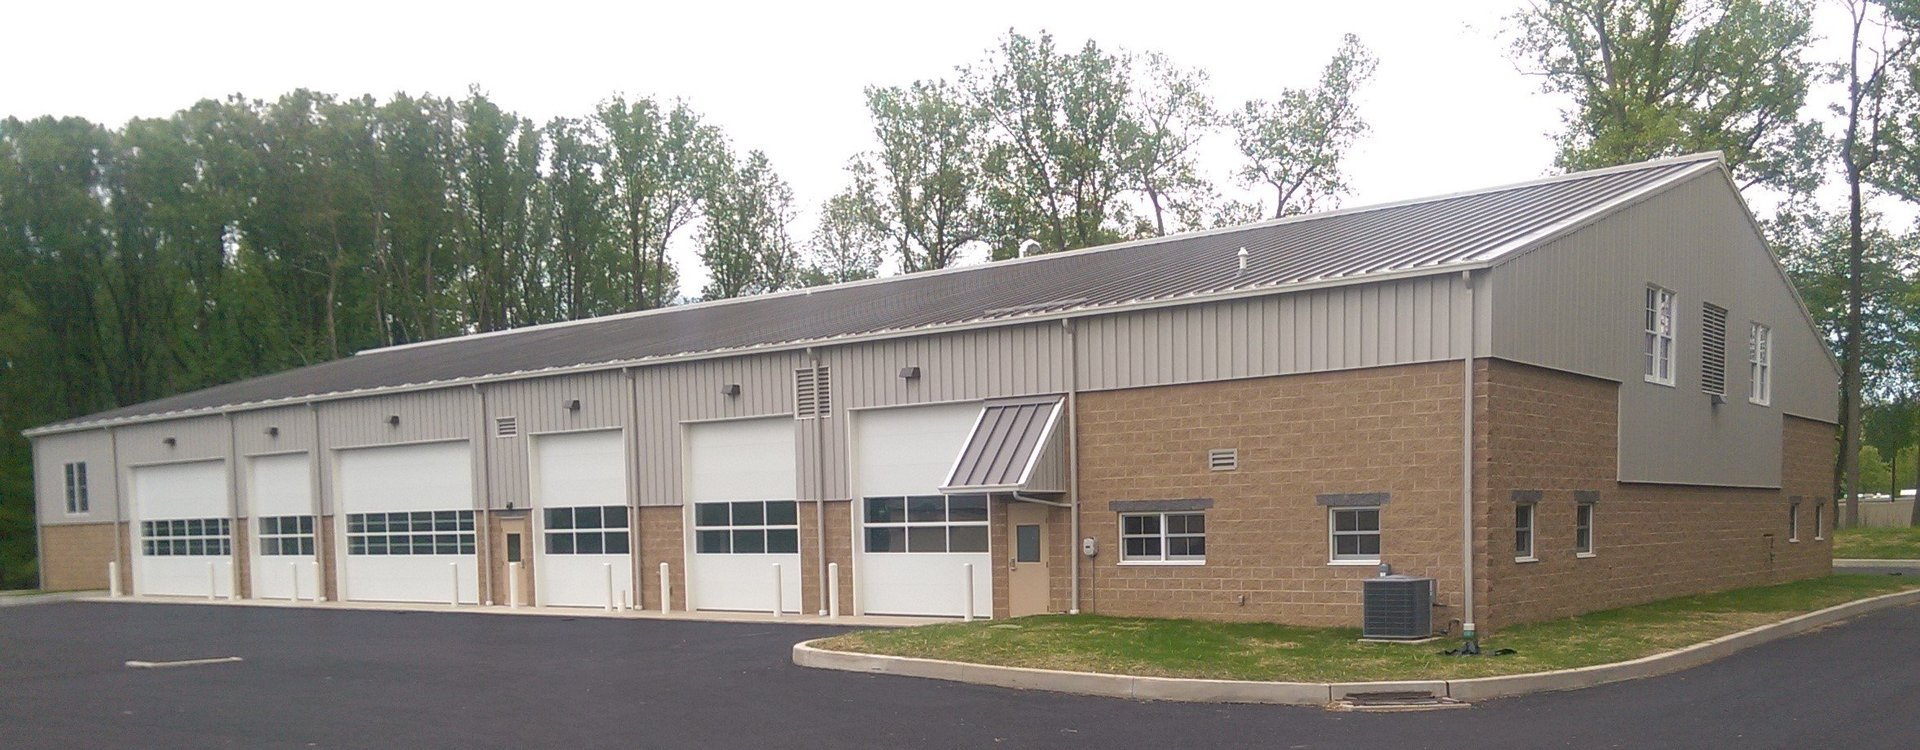 Smith miller associates consulting engineers for Wyoming valley motors kingston pa